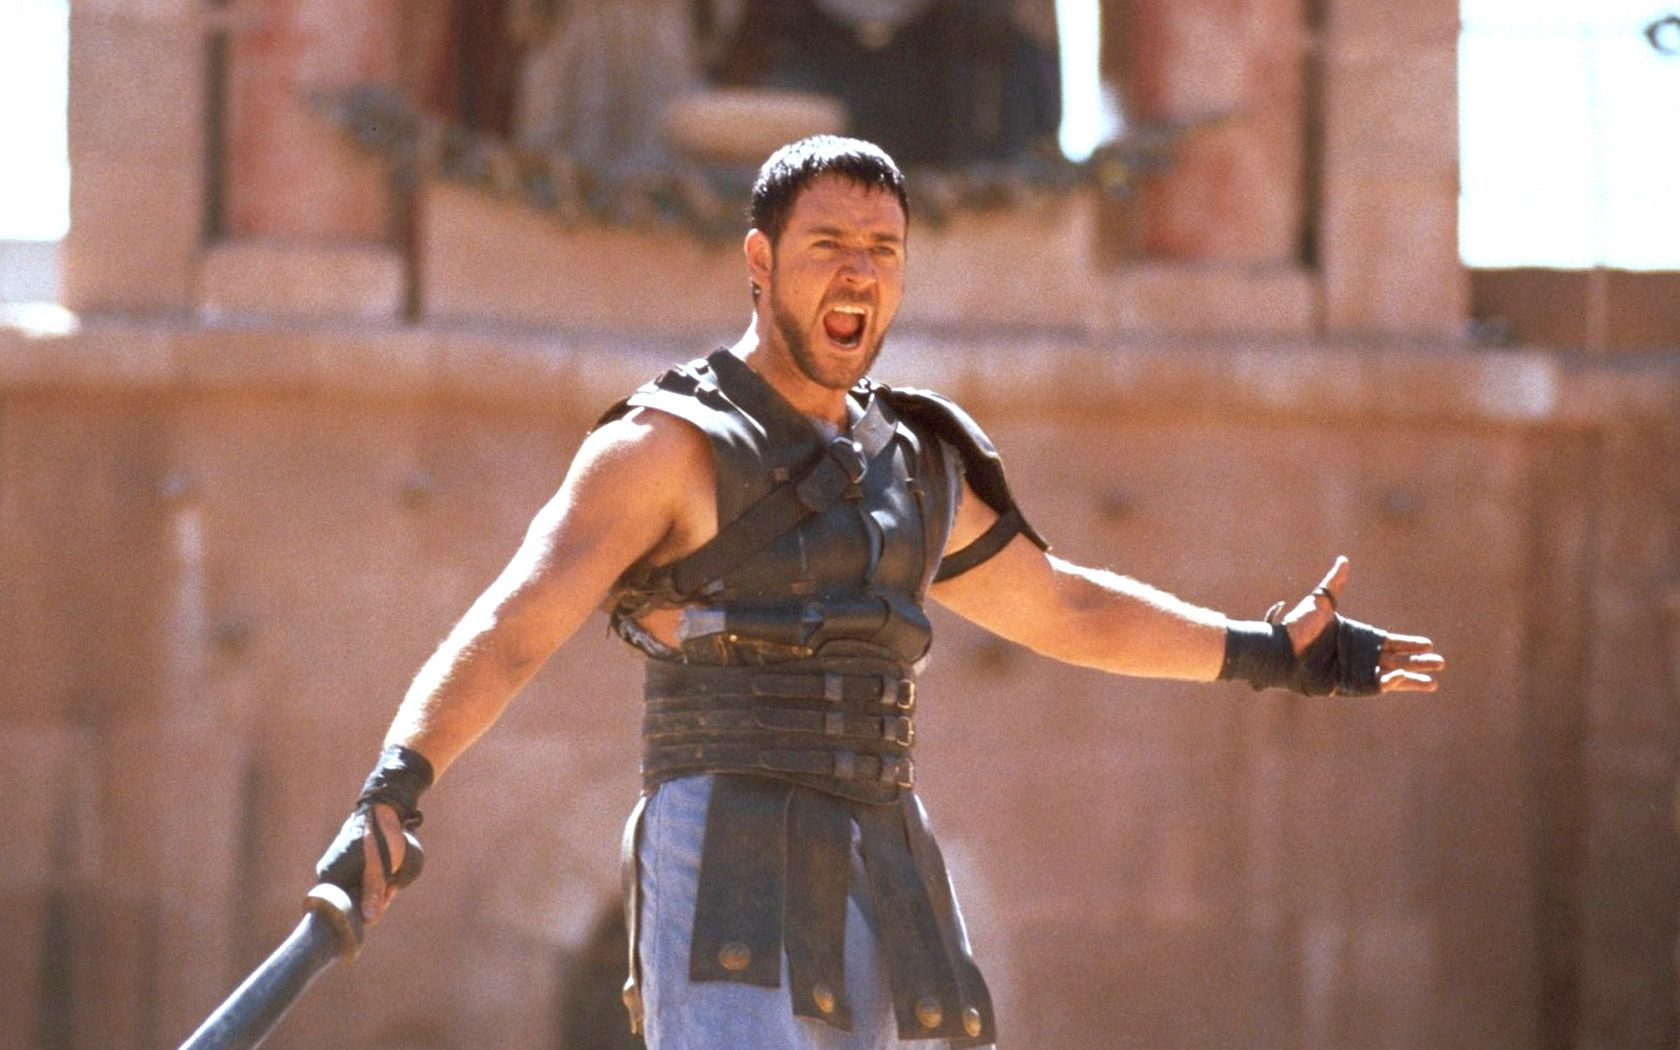 Gladiator 2 in the Works with Ridley Scott Directing | Collider